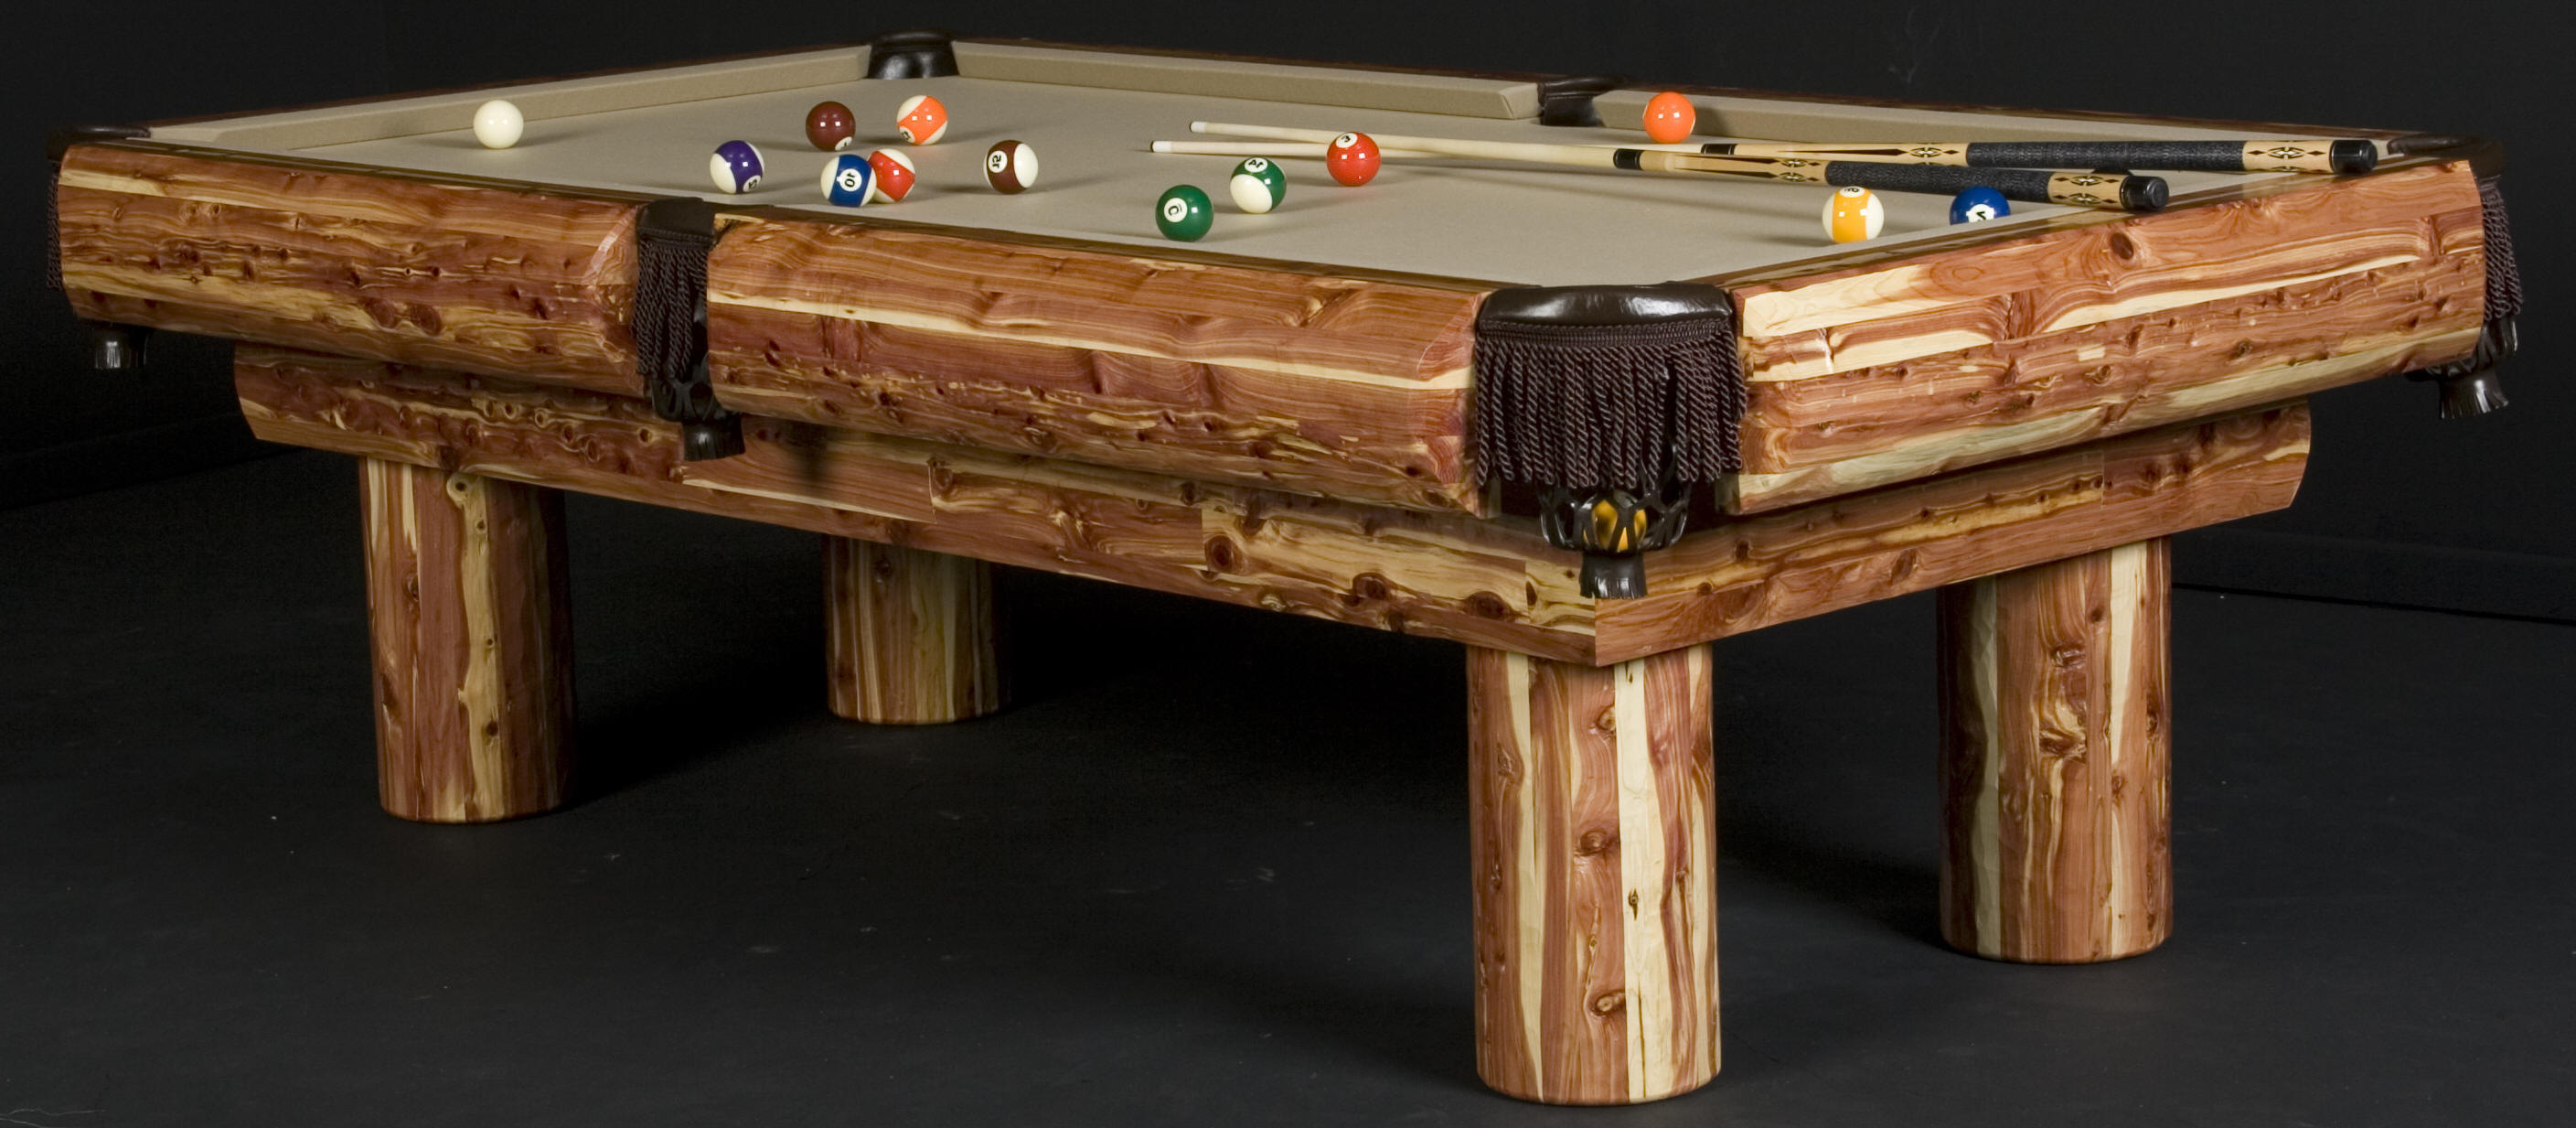 Wonderful unique pool table design homesfeed for Table in table